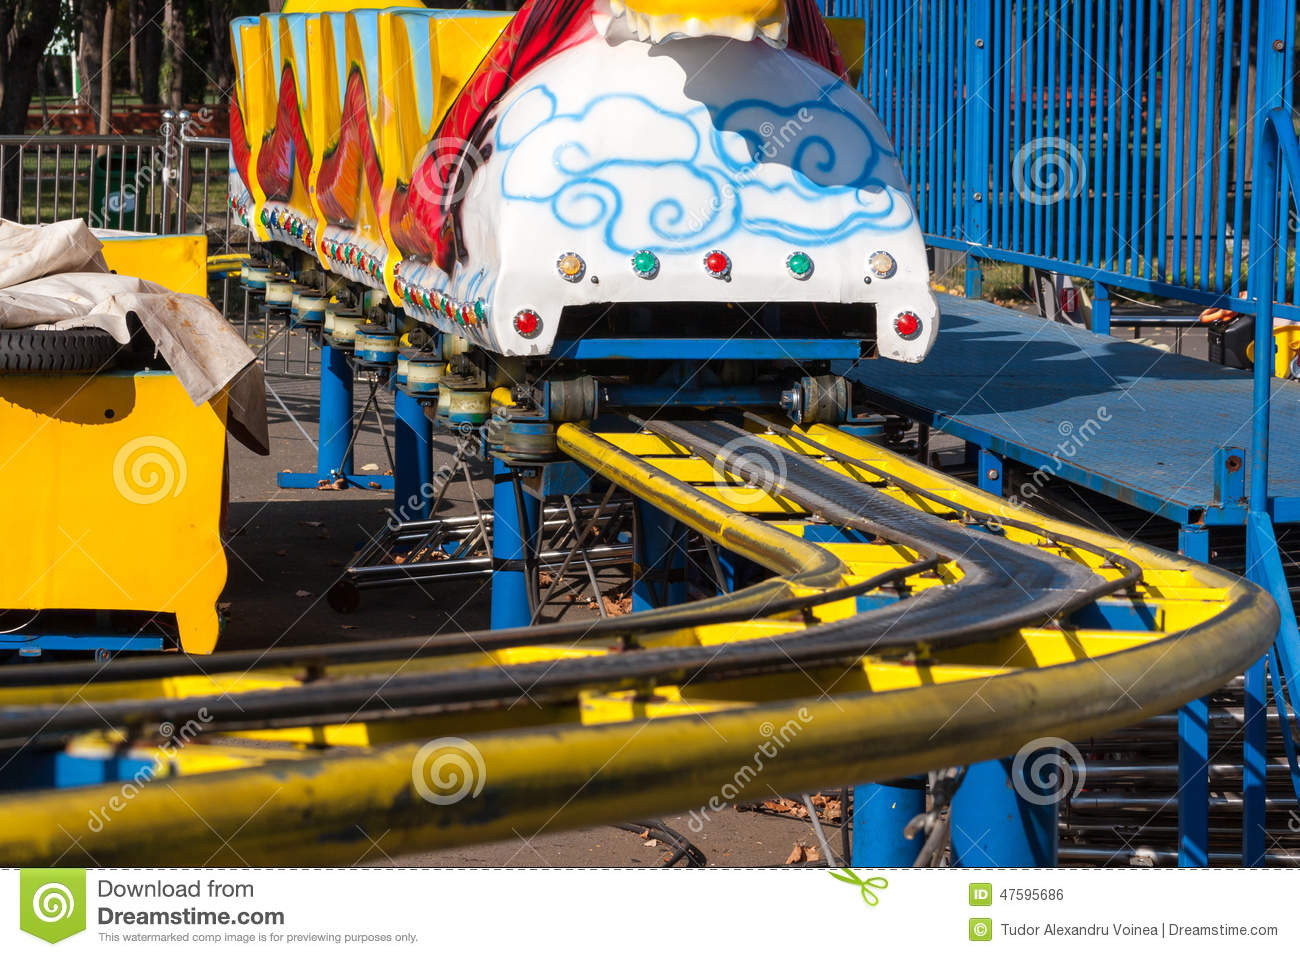 Stationary kids roller coaster with yellow rails.